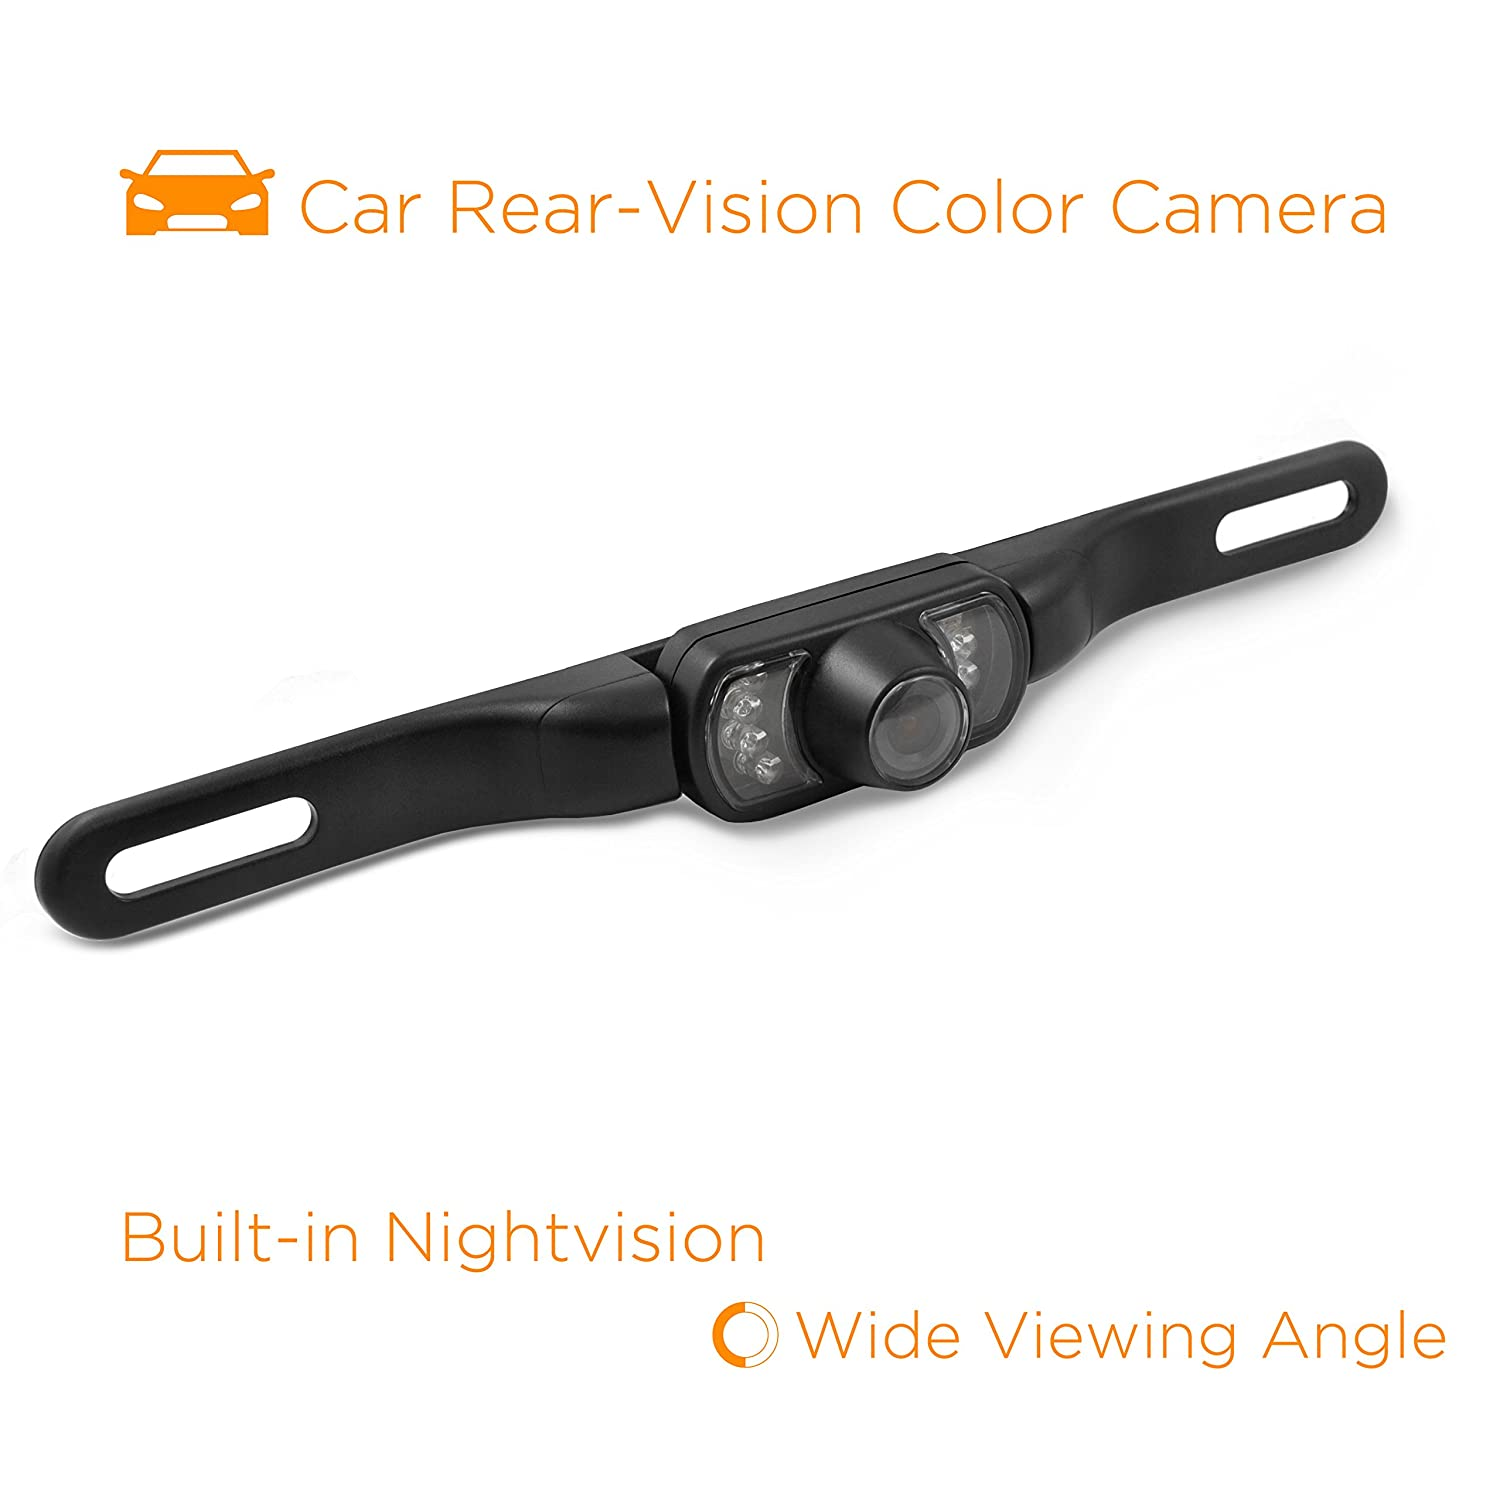 XOVISION HTC36 Flush-Mount Backup Camera with Night Vision and 170deg Wide-Angle View